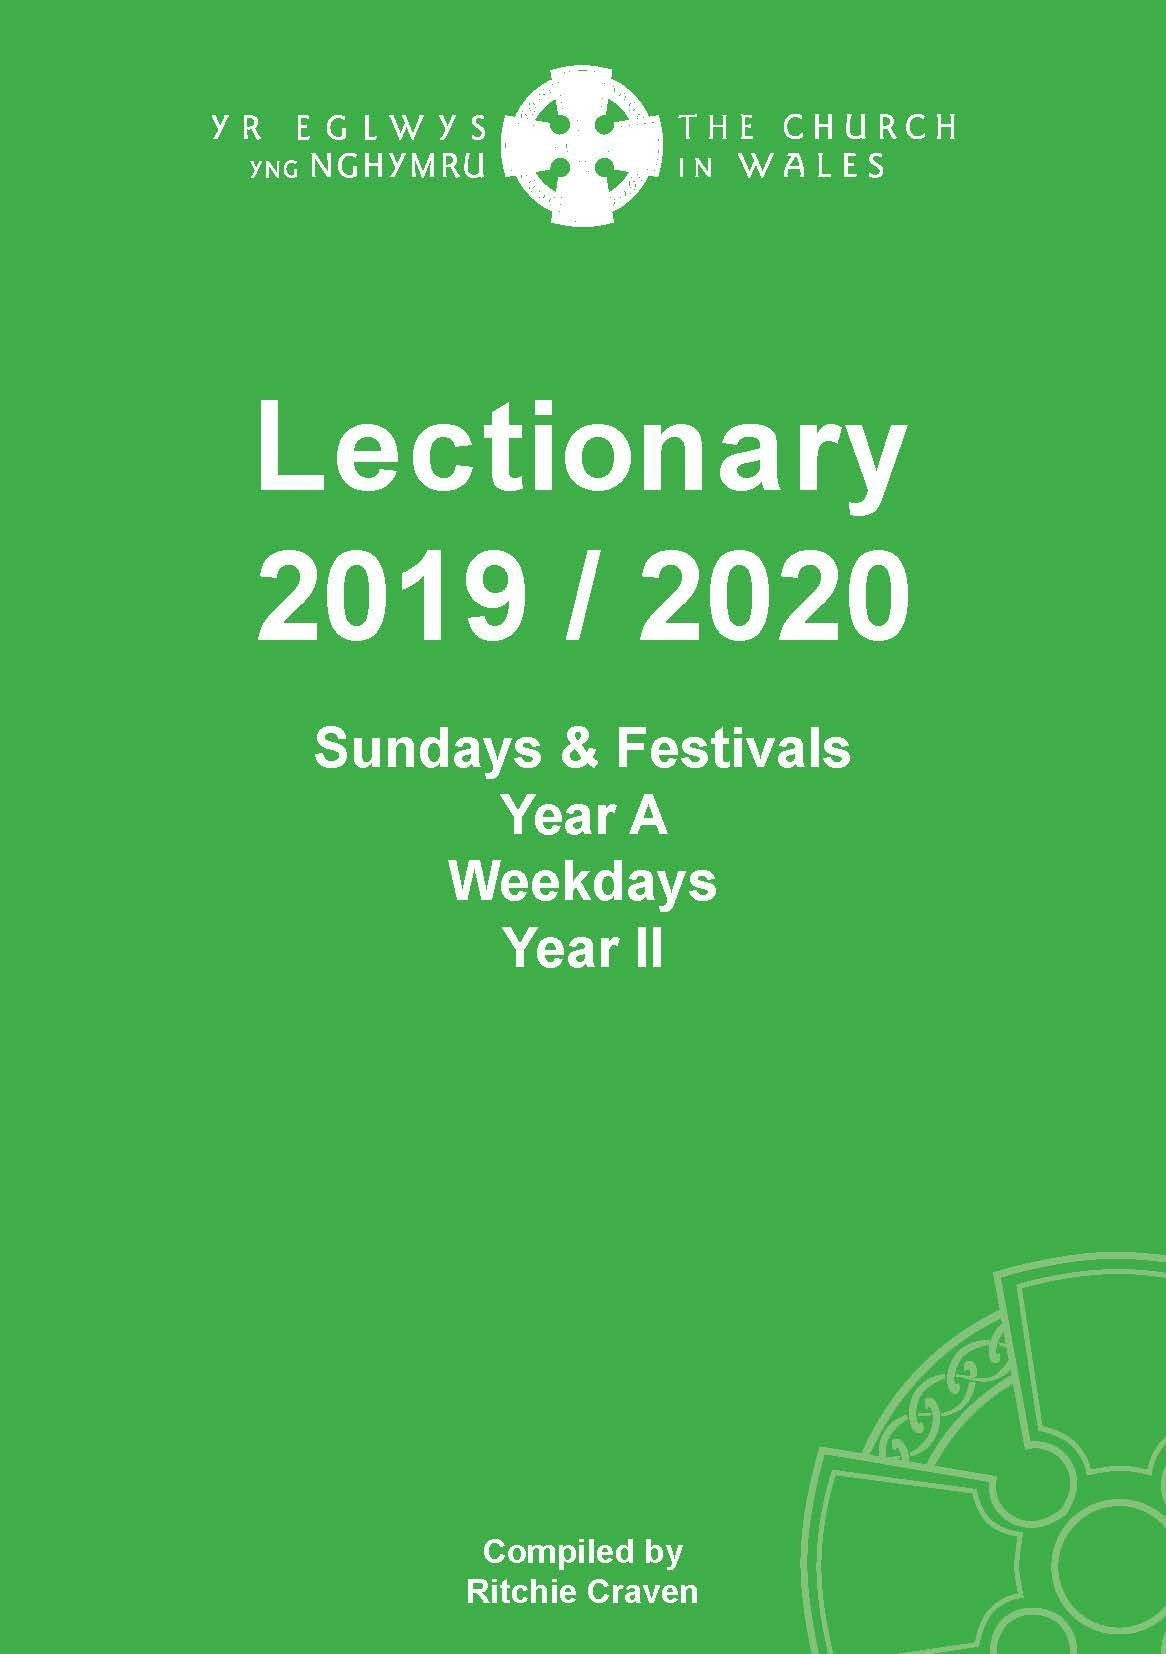 Lectionary - A - The Church In Wales  Lectionary Page 2020